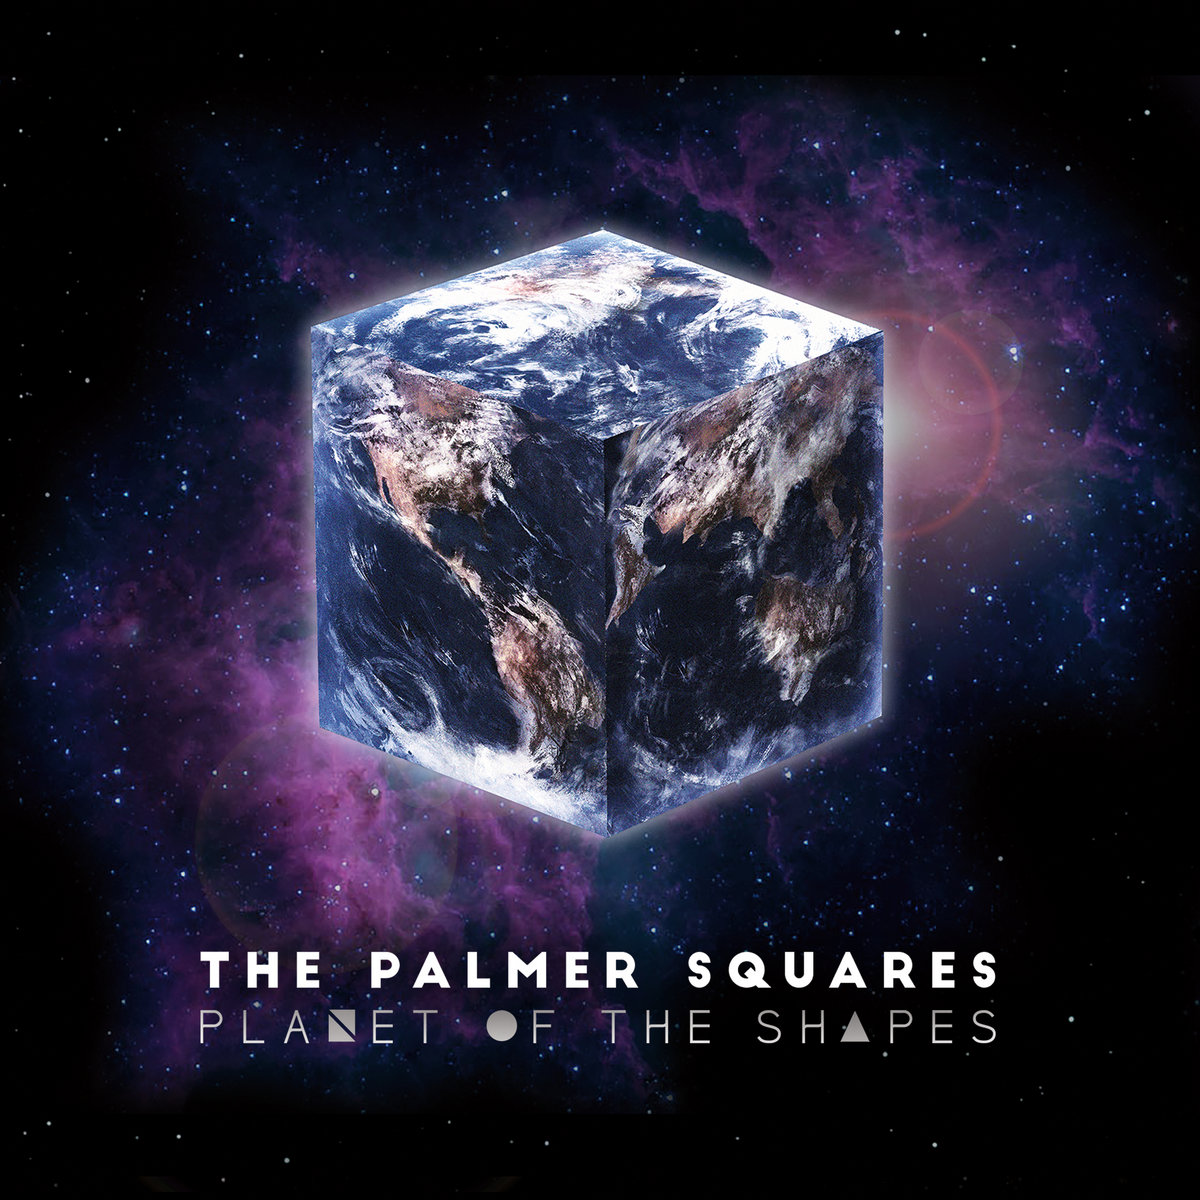 planet of the shapes the palmer squares